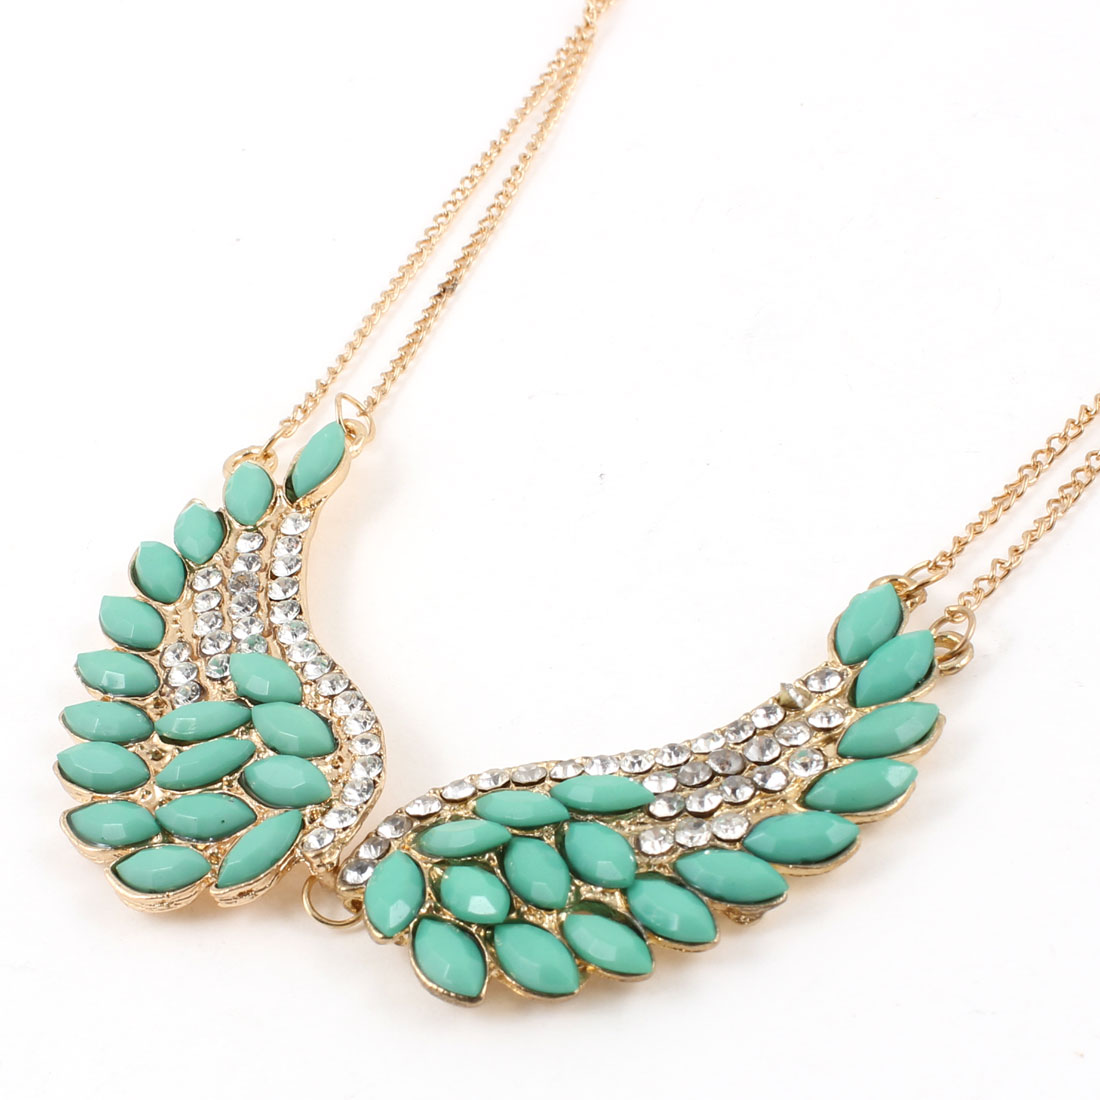 Lady Rhinestone Decor Wing Pendant Double Layer Chain Gold Tone Sweater Necklace Necklace